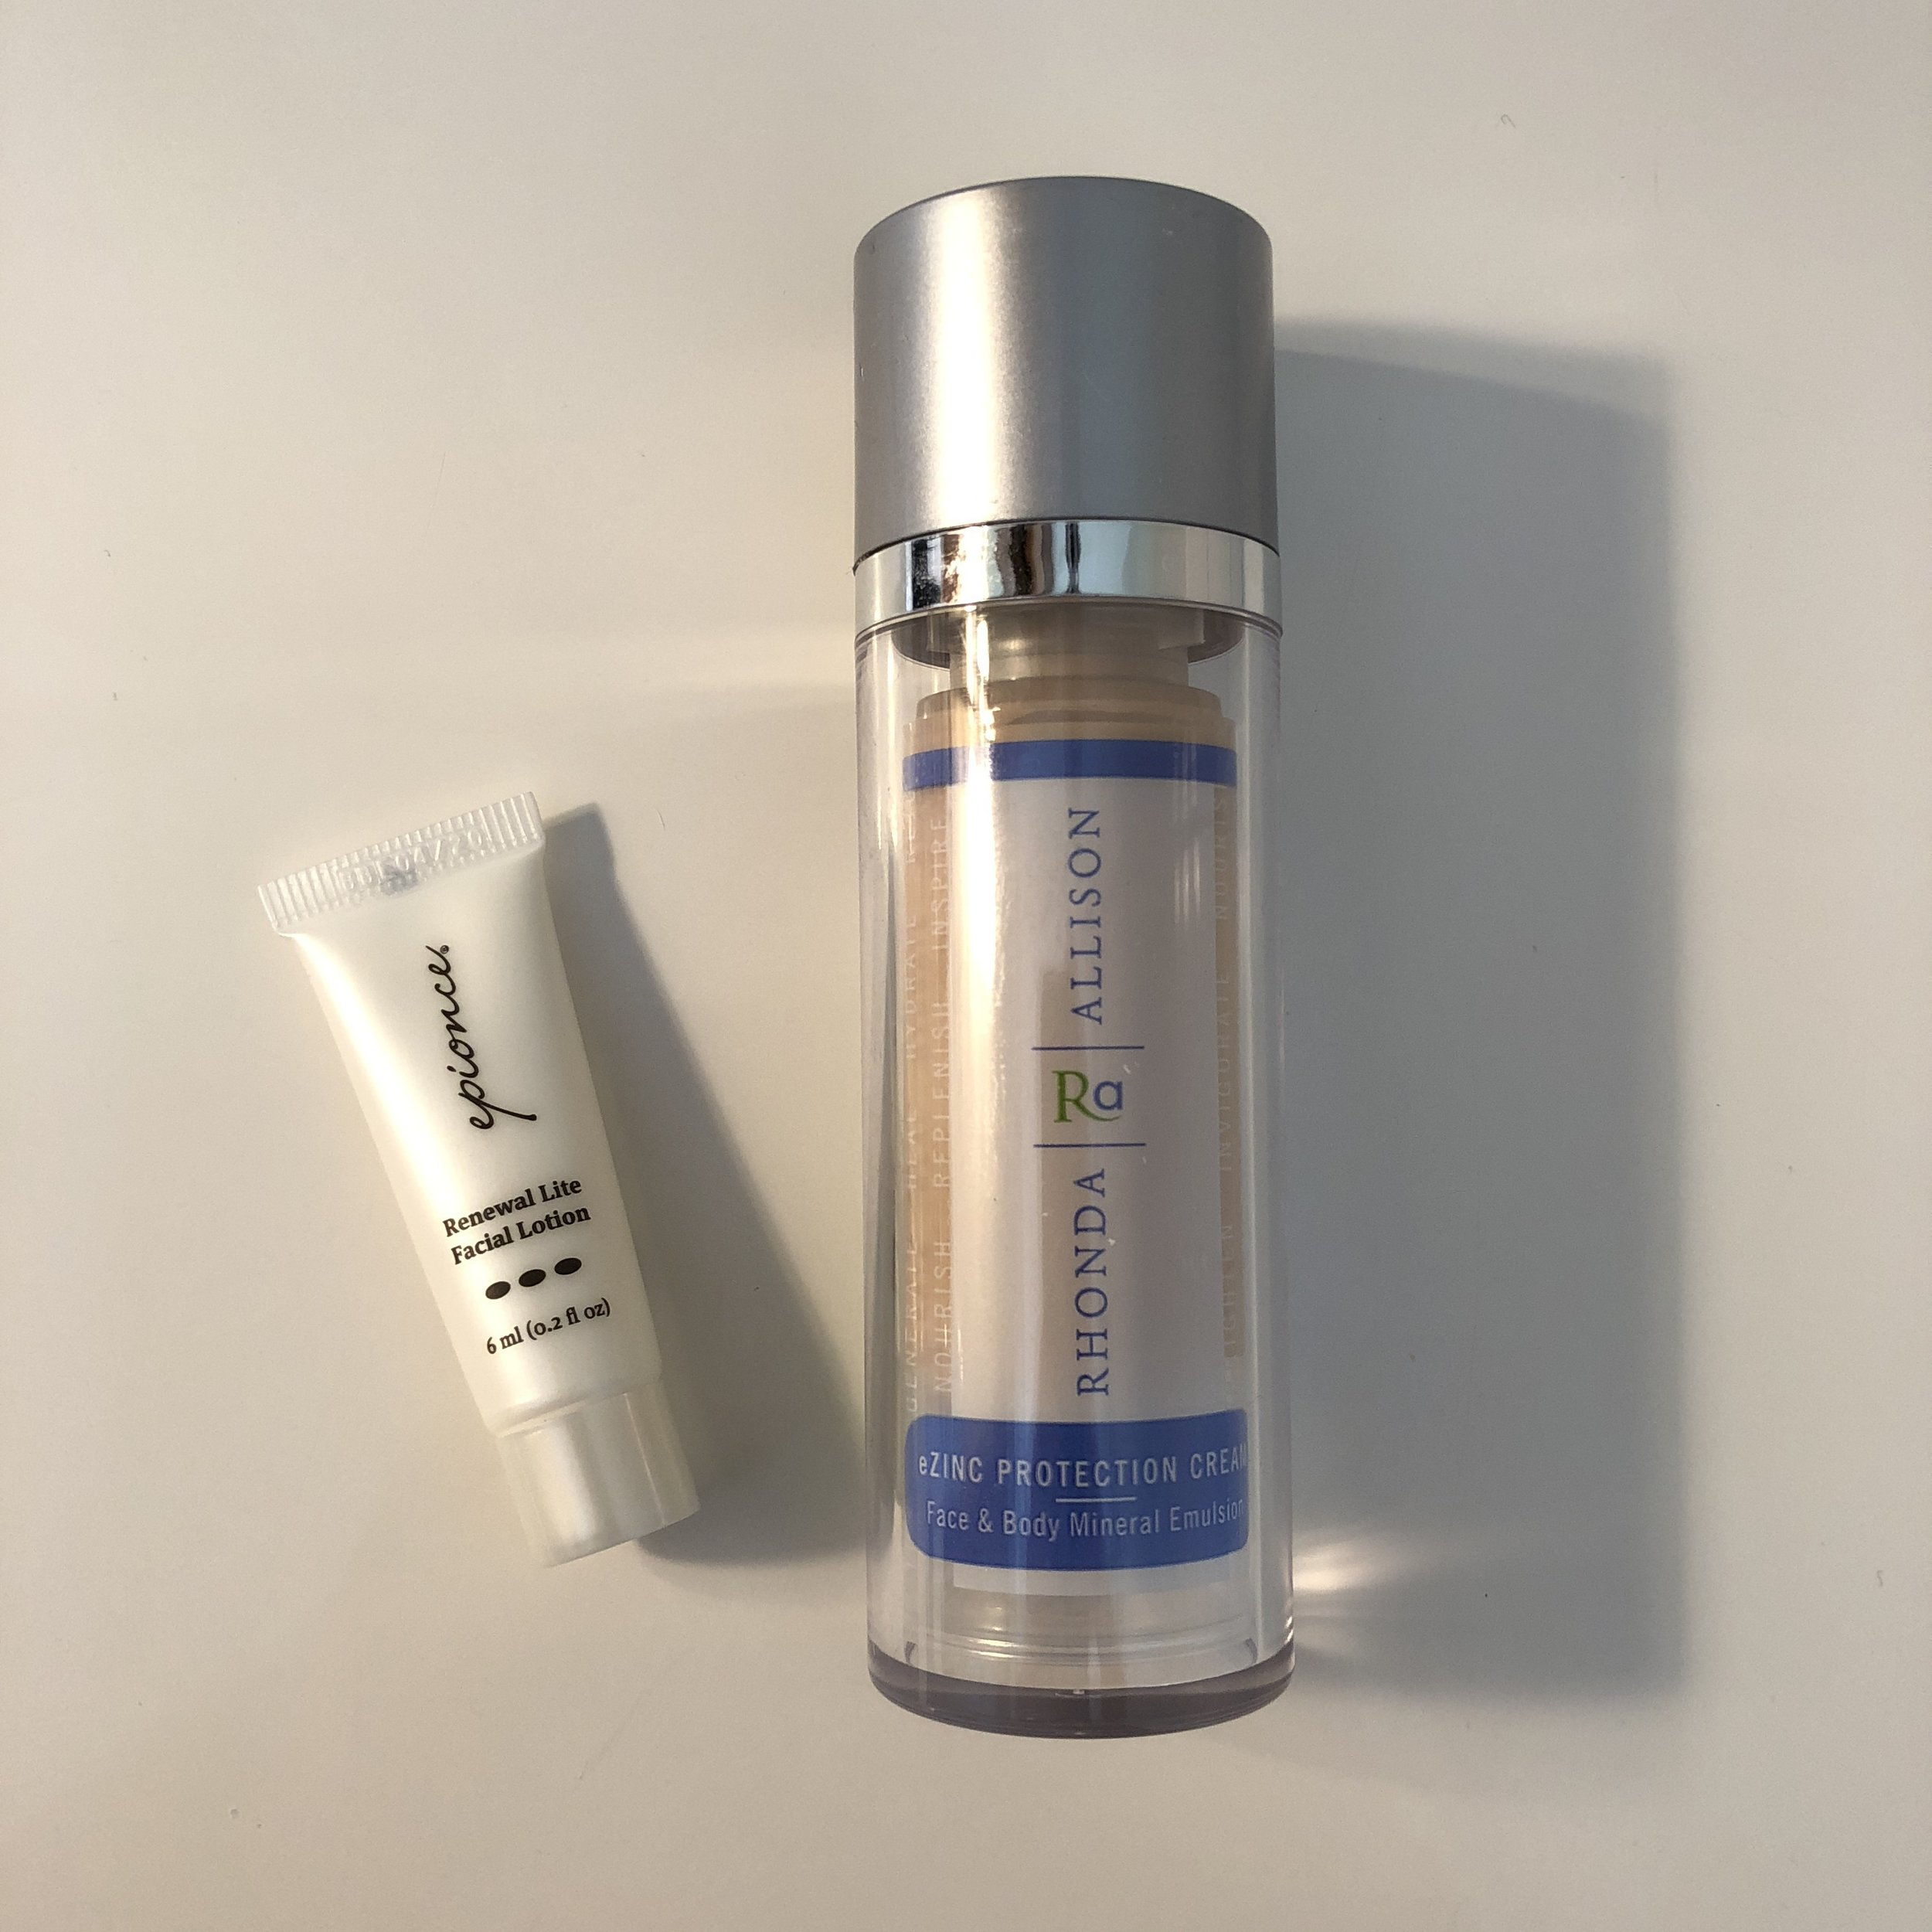 Trying these facial moisturizers:  Epionce  Renewal Lite Facial Lotion and  Rhonda Allison  eZINC Protection Cream.